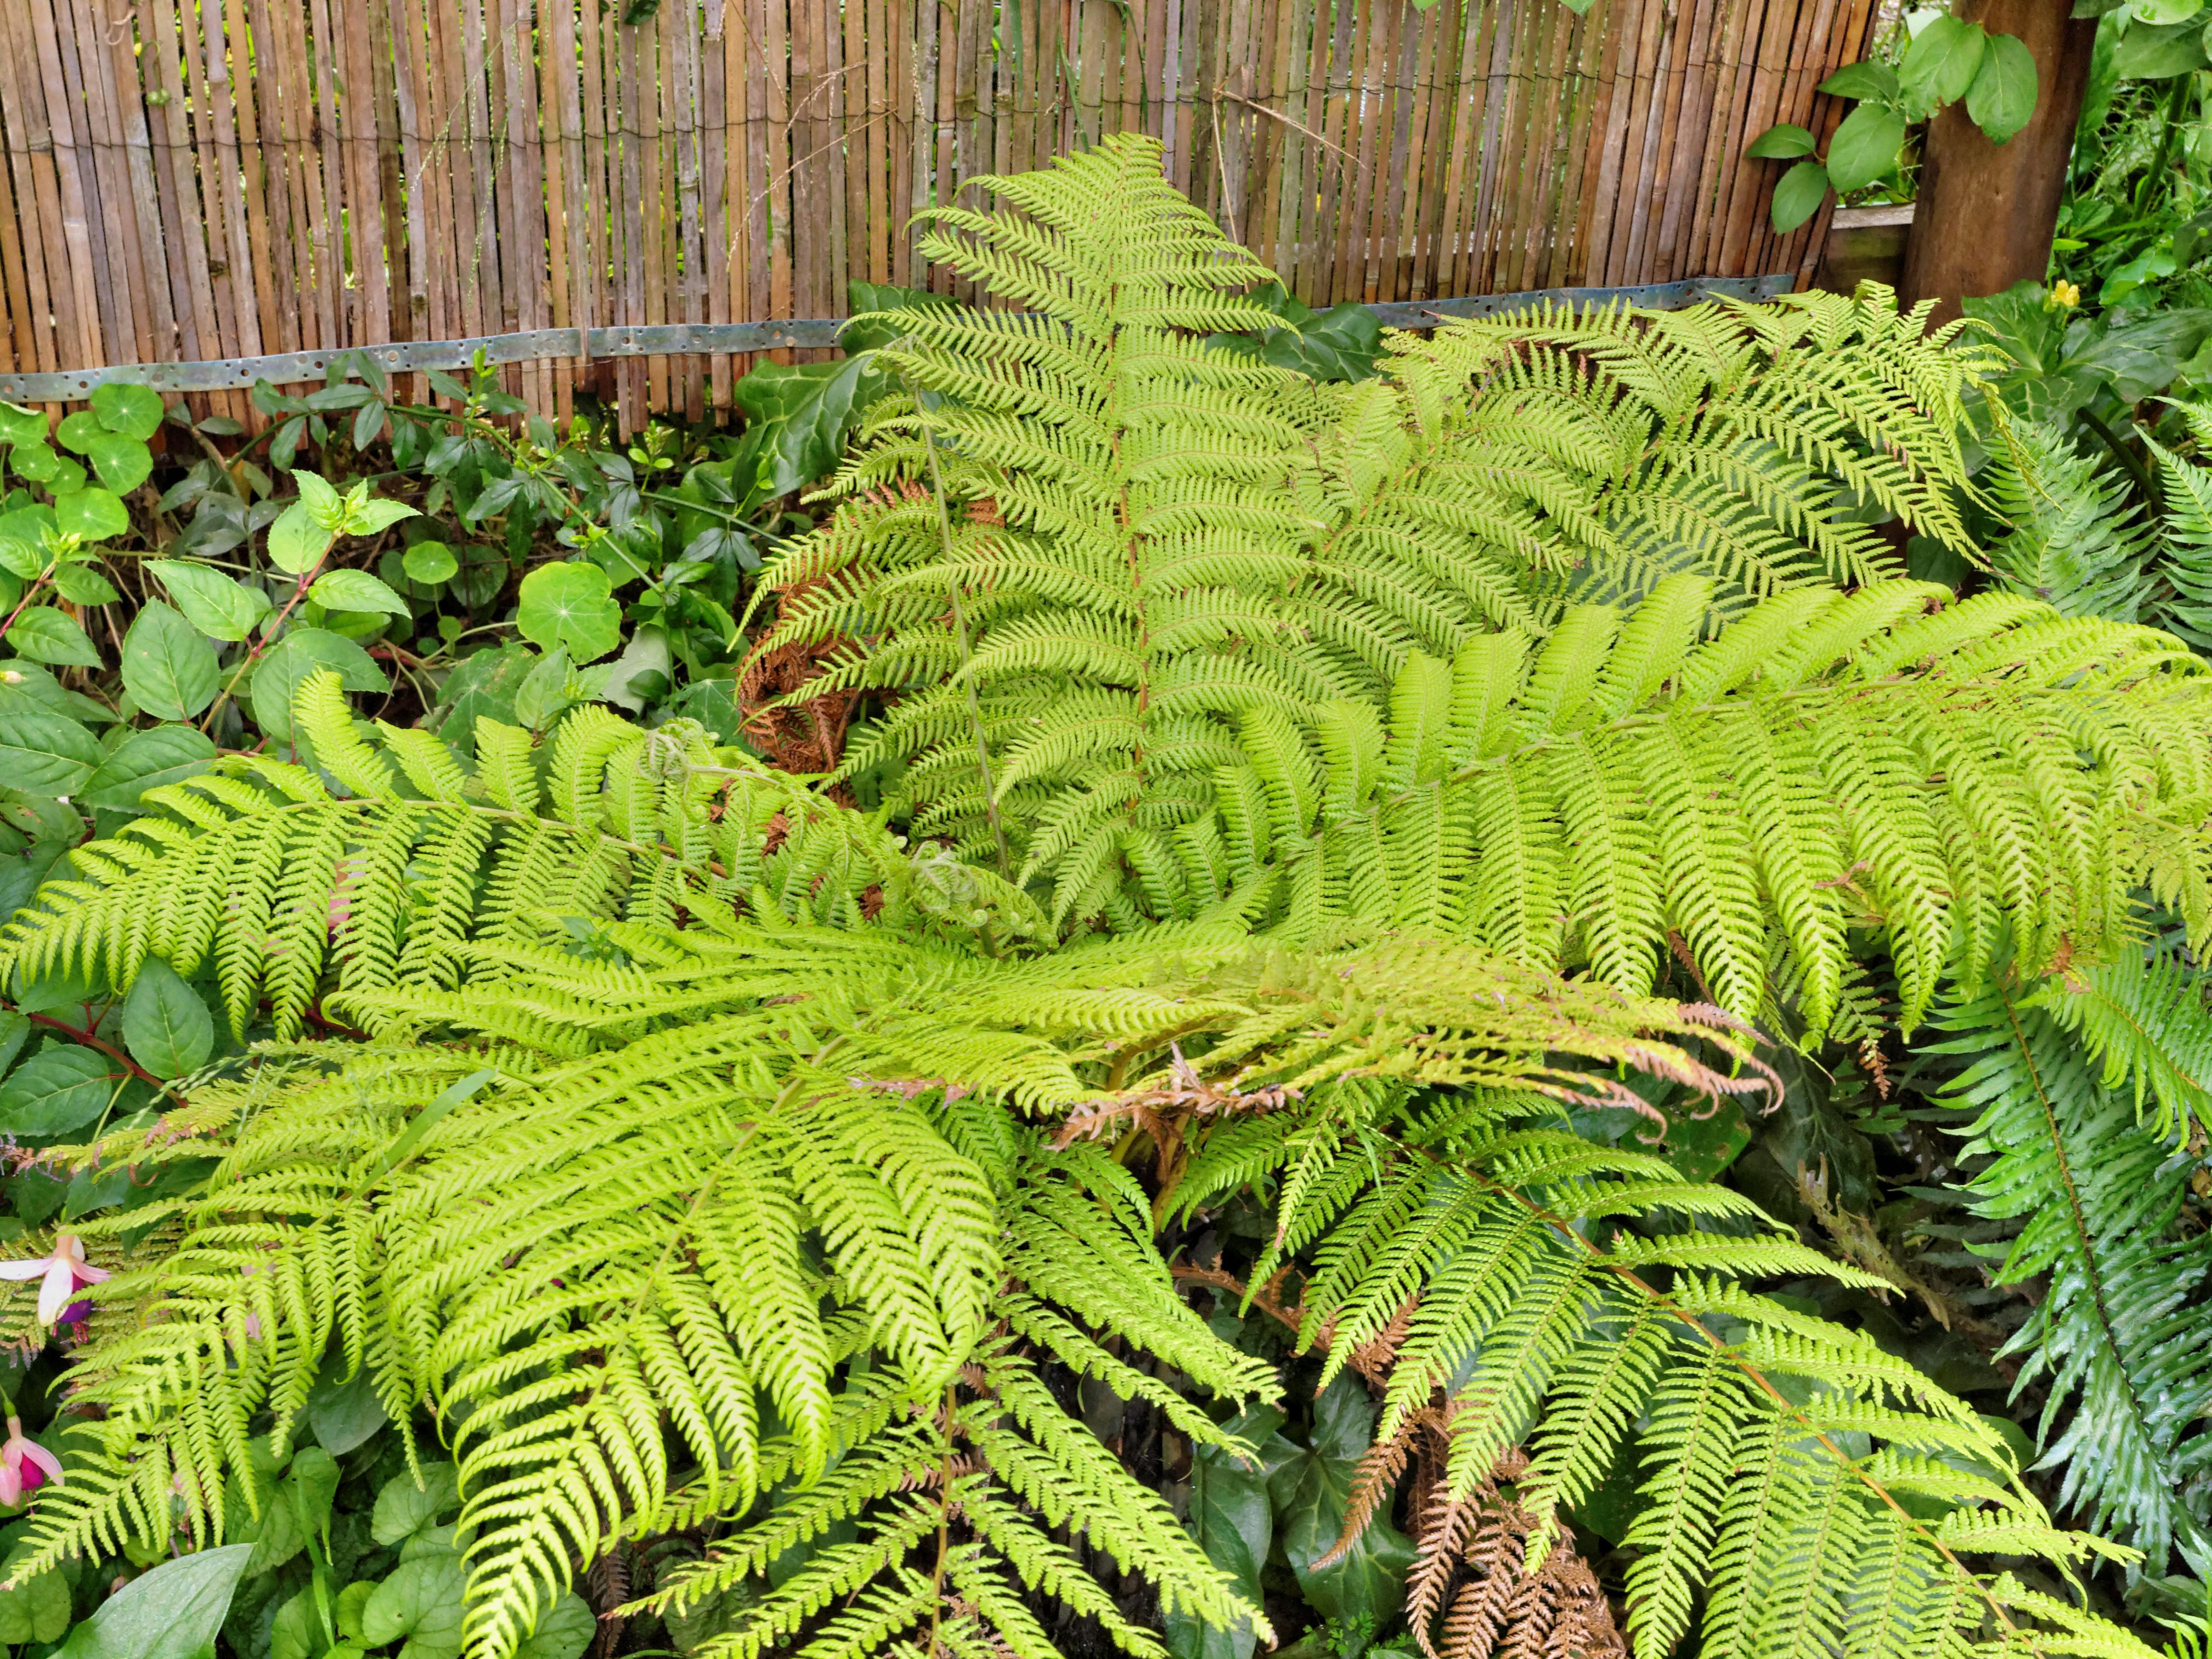 Tree-fern-1.jpeg